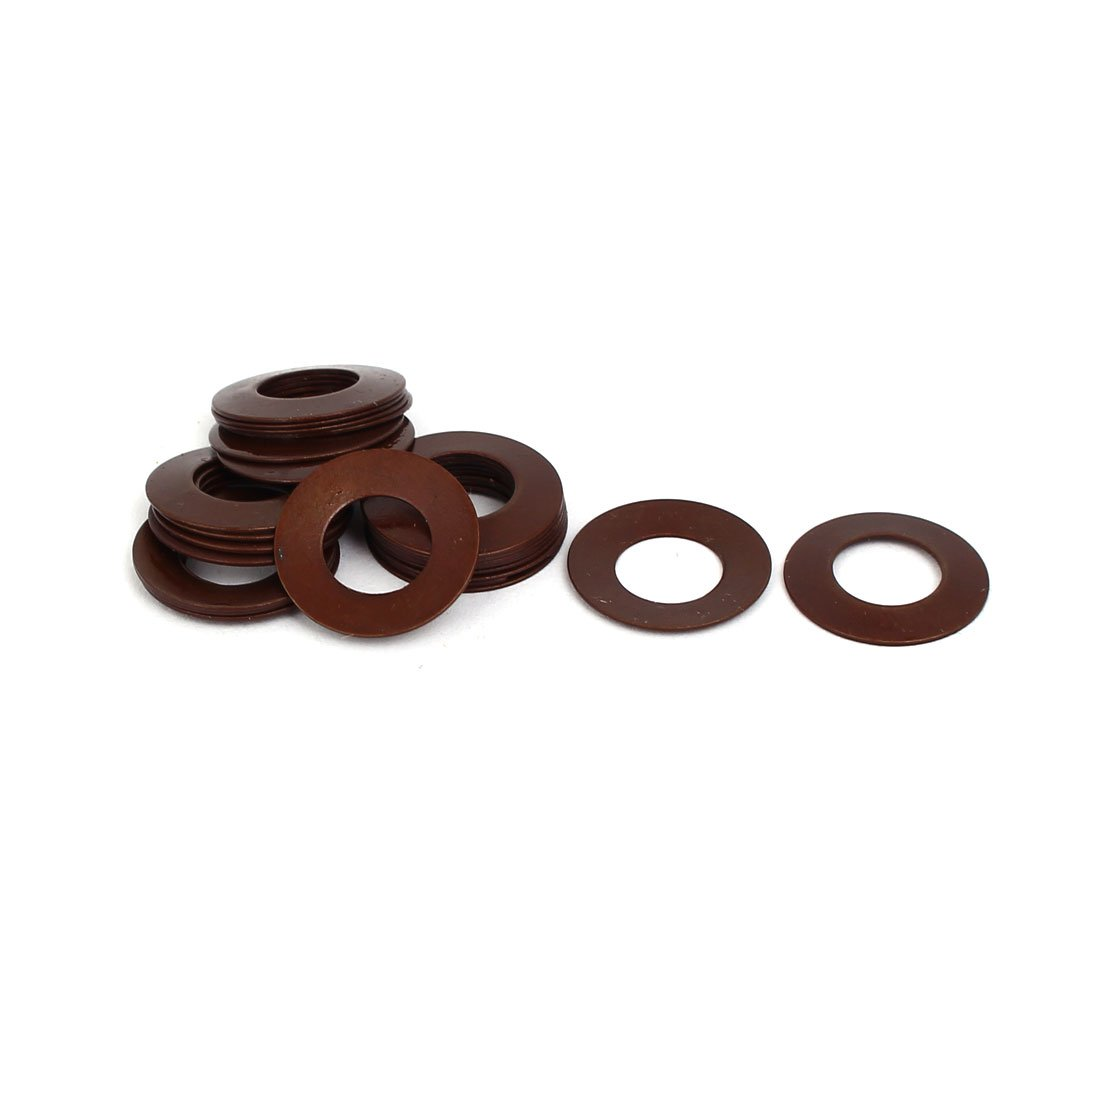 uxcell 14mm Outer Dia 7.2mm Inner Diameter 0.35mm Thickness Belleville Spring Washer 25pcs